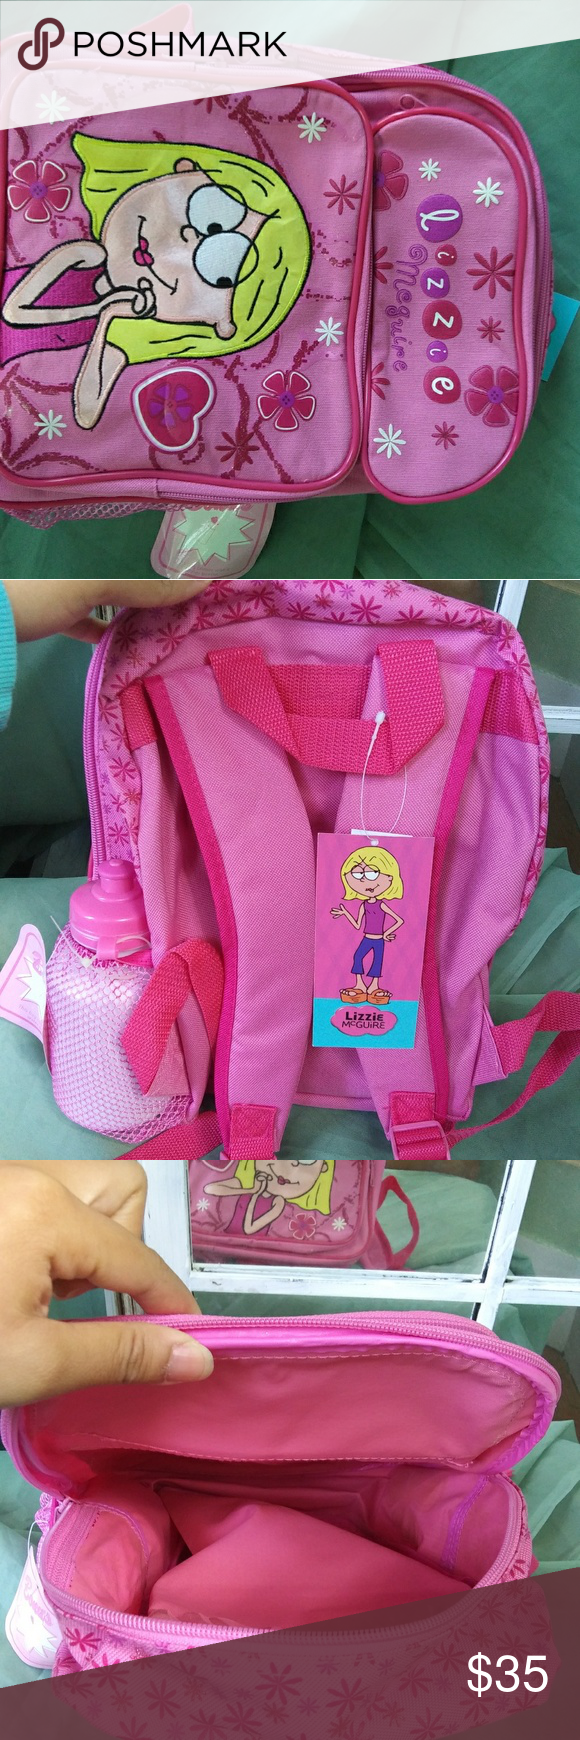 Lizzie McGuire backpack Brand new y2k Lizzie McGuire backpack with tags and a water bottle. Height 12 inches  legnth 9.5 inches Width 4 inches Disney Bags Backpacks #lizziemcguire Lizzie McGuire backpack Brand new y2k Lizzie McGuire backpack with tags and a water bottle. Height 12 inches  legnth 9.5 inches Width 4 inches Disney Bags Backpacks #lizziemcguire